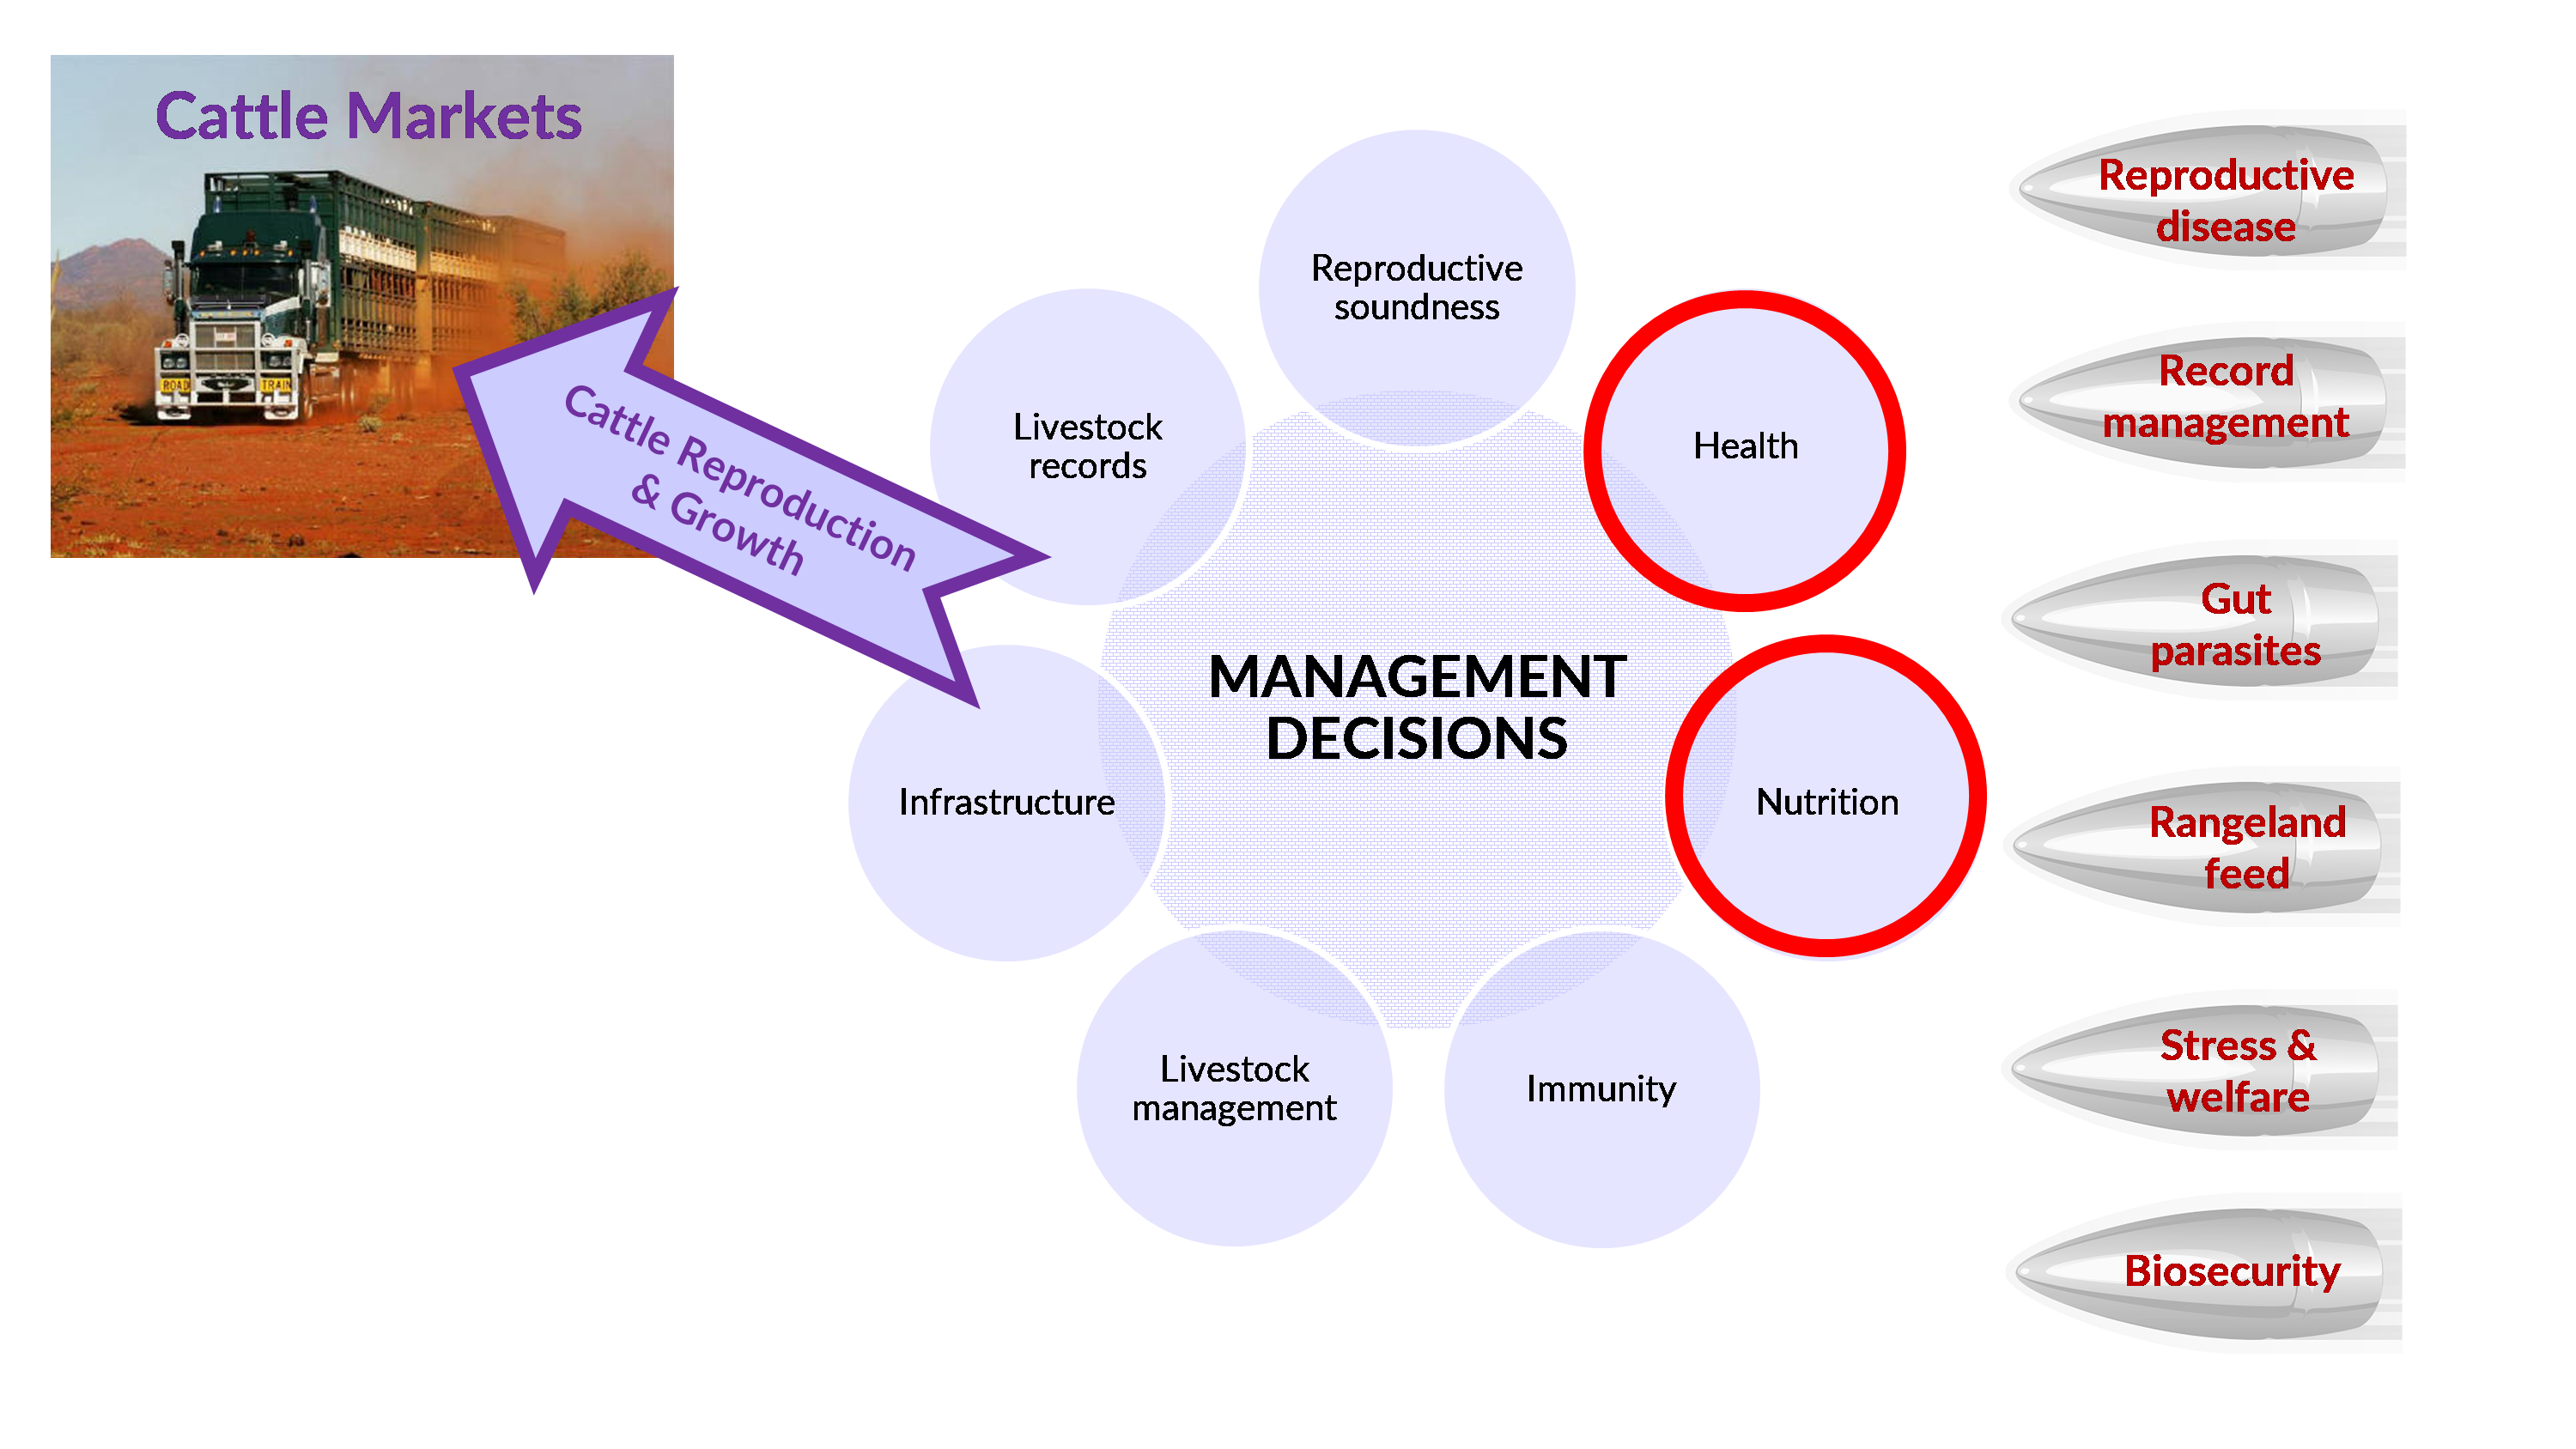 Figure 1. Integration of management decisions is required to optimise reproduction and growth of cattle for markets.